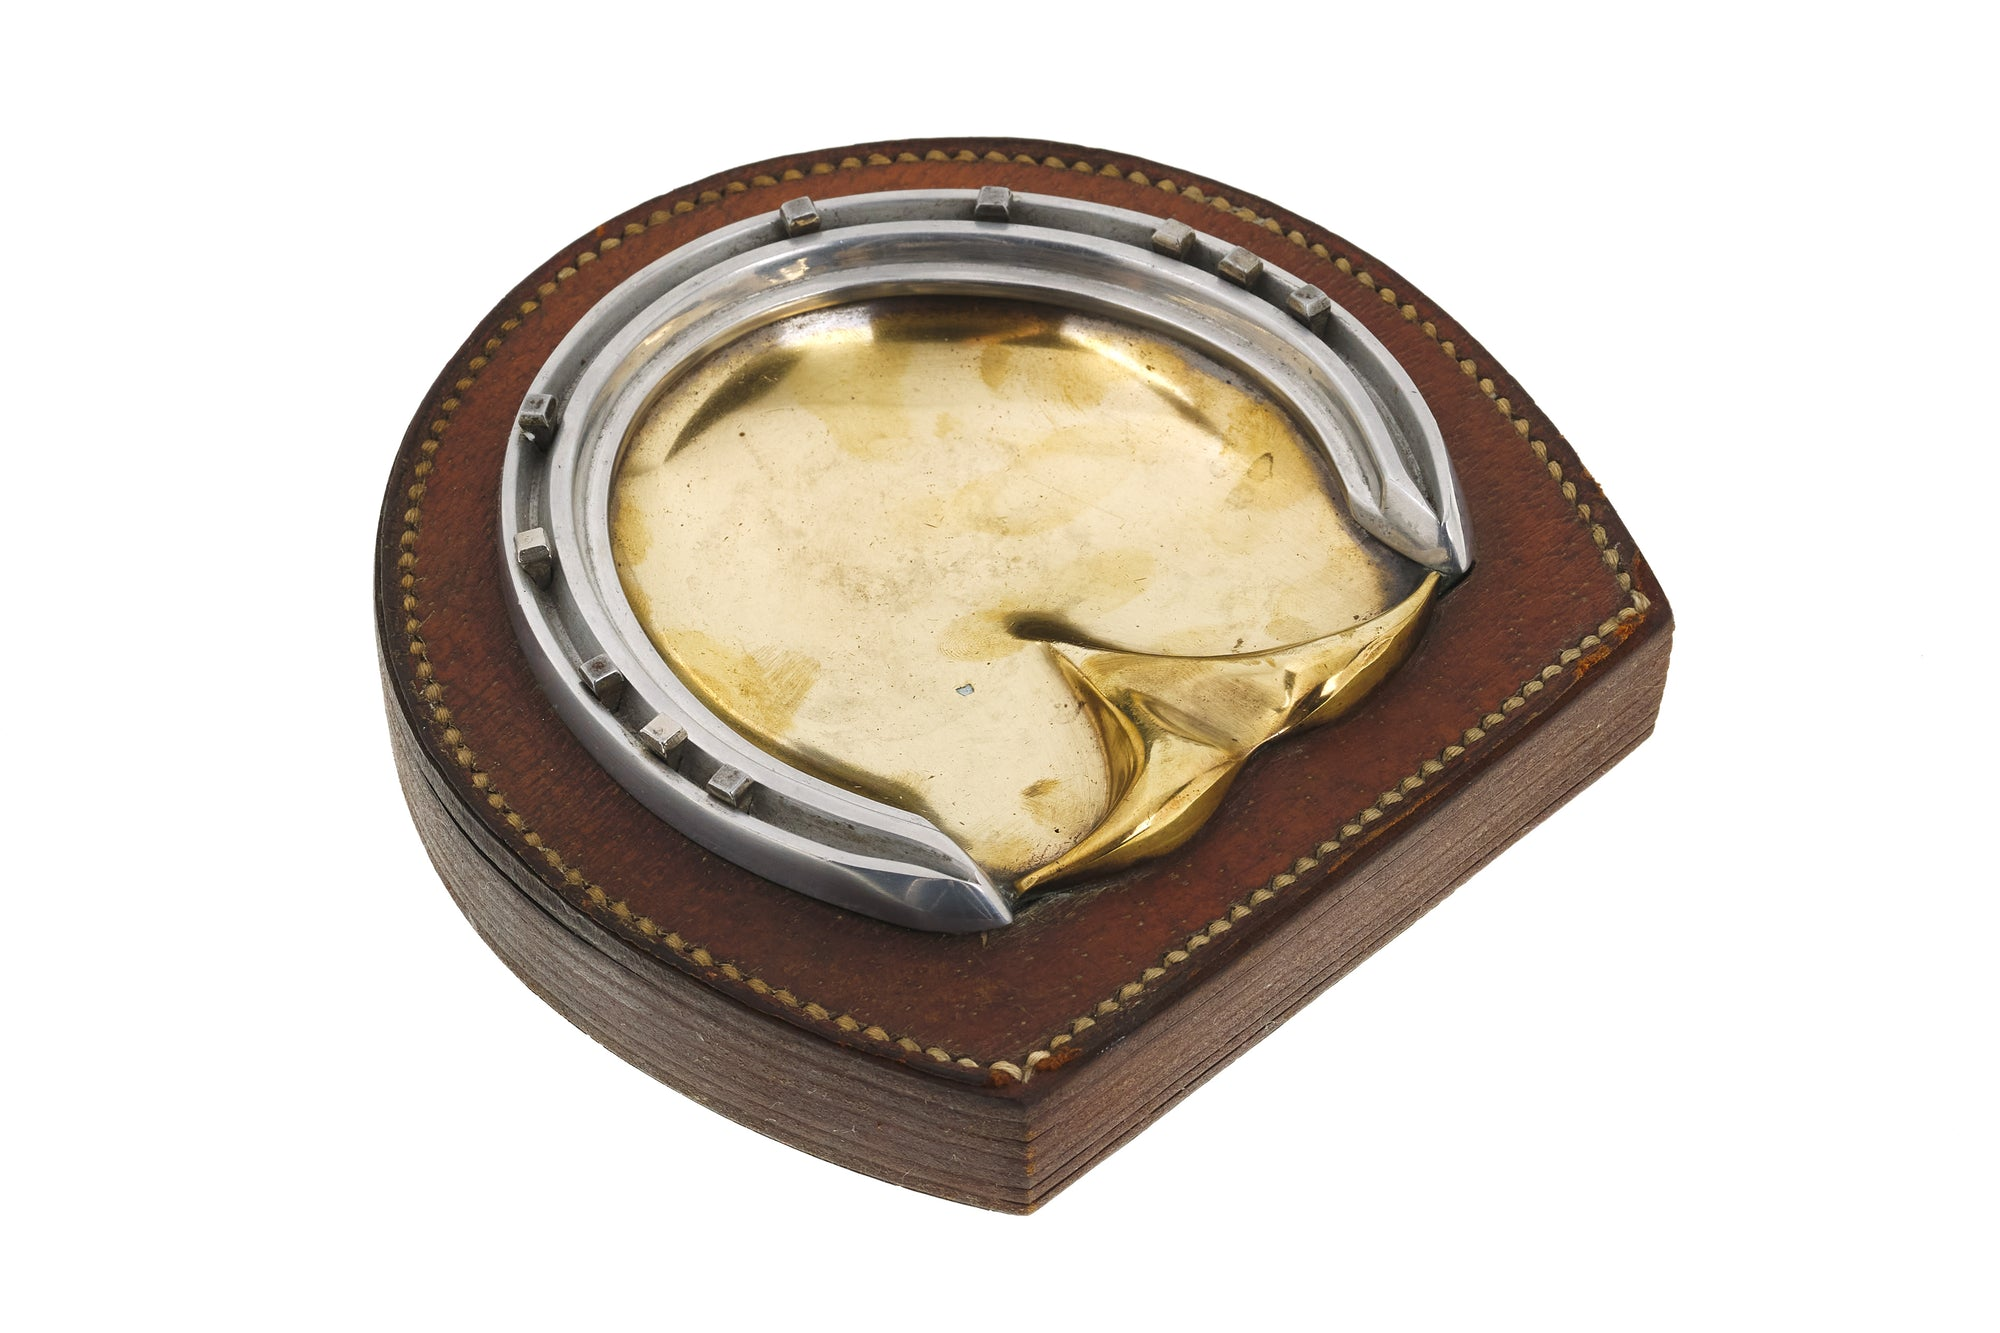 Hermes Leather Ashtray by Paul Dupre-Lafon